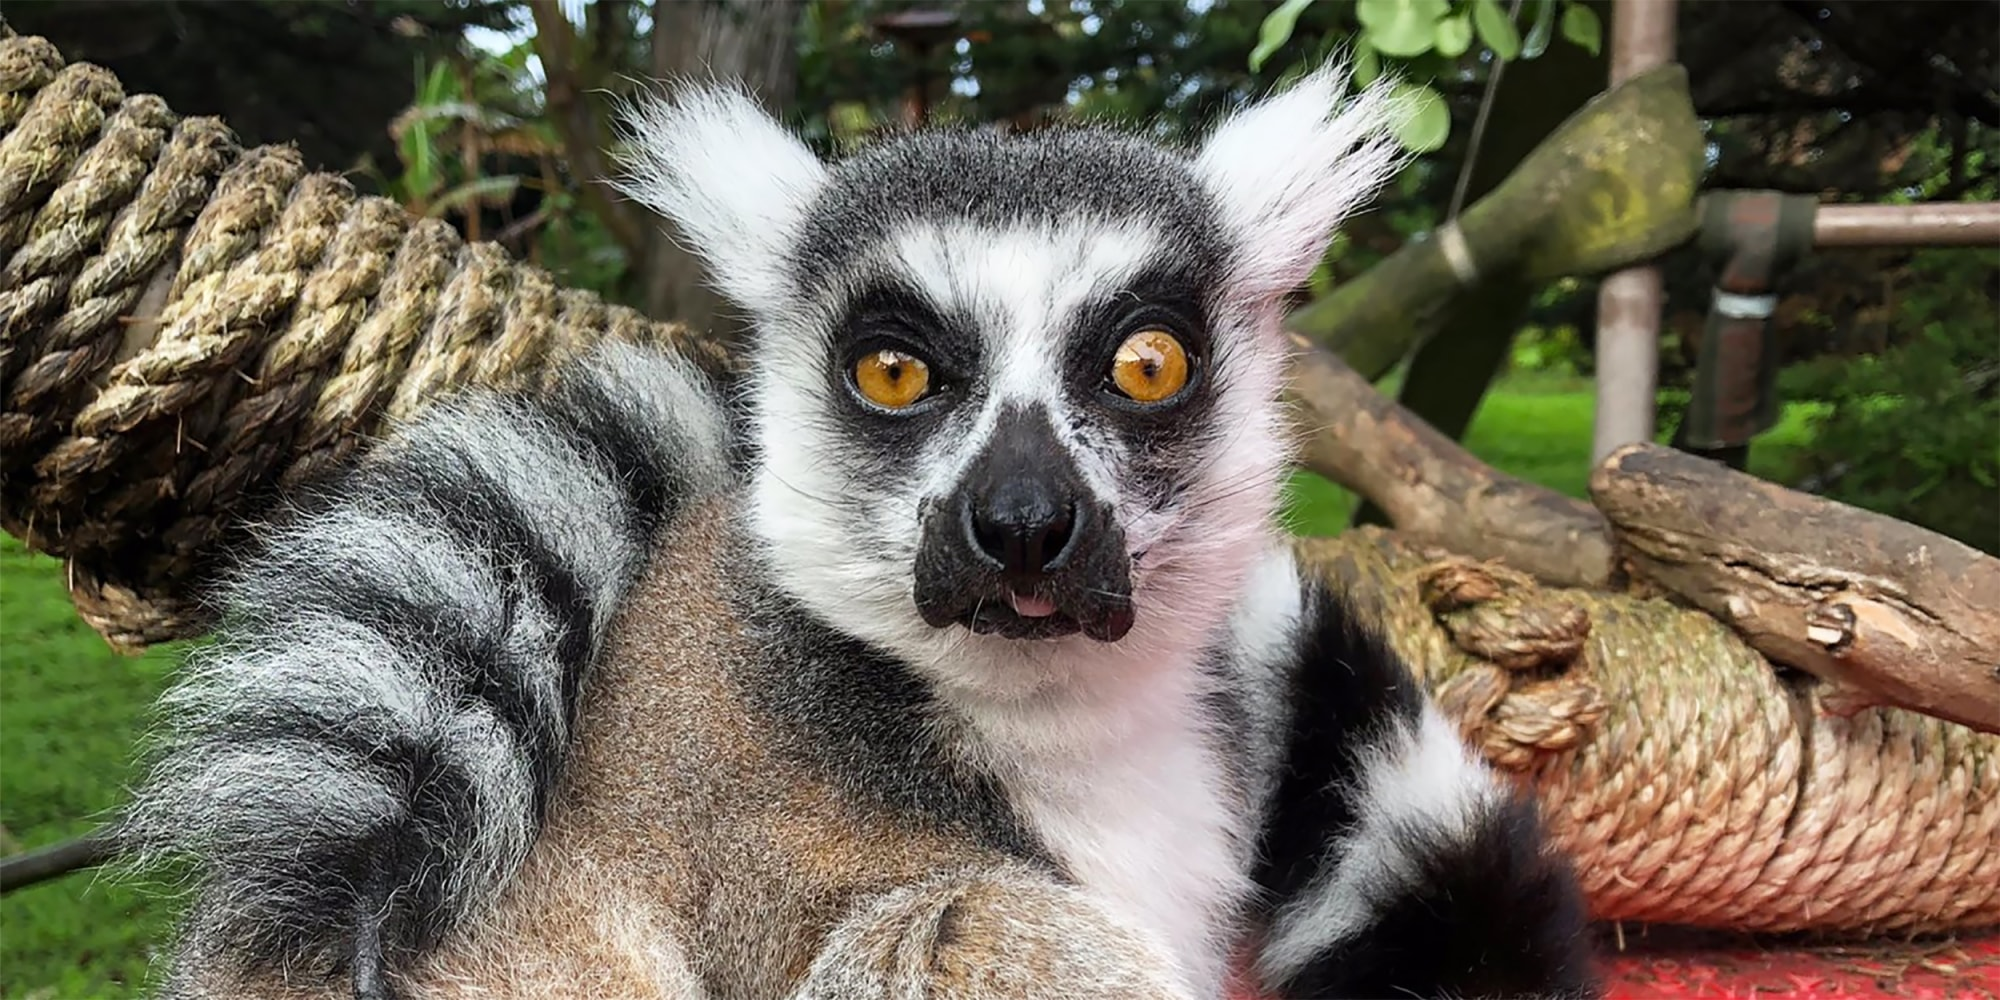 21-year-old male ring-tailed lemur, Maki, was discovered missing from the San Francisco Zoo's Lipman Family Lemur Forest, on Oct. 14, 2020.San Francisco Zoo